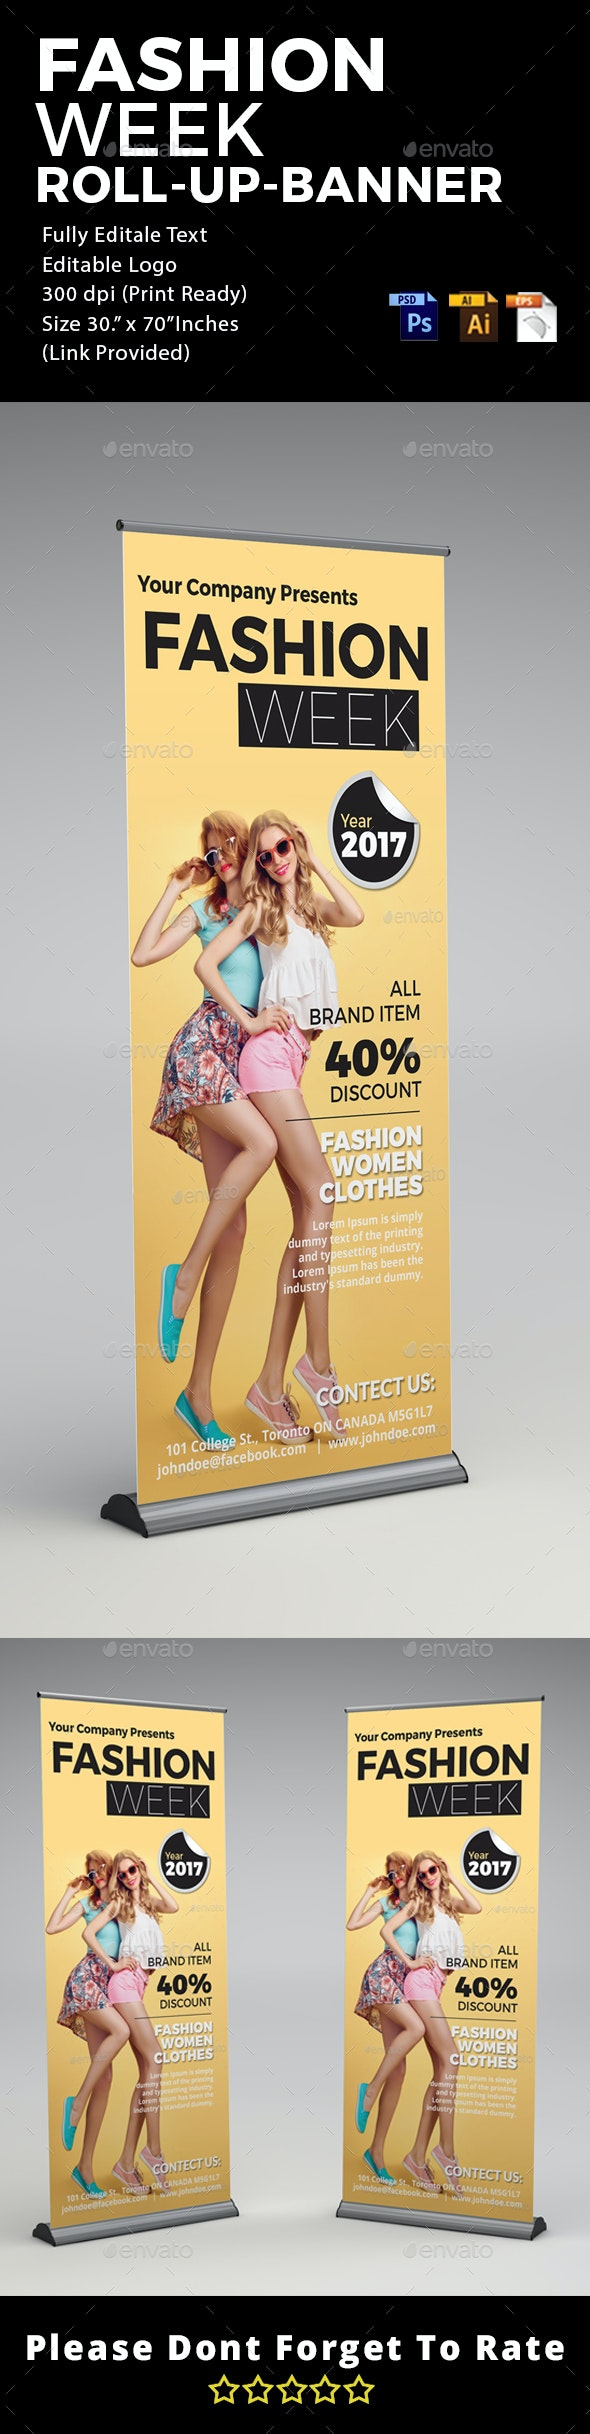 Fashion - Roll Up Banner Signage - Signage Print Templates